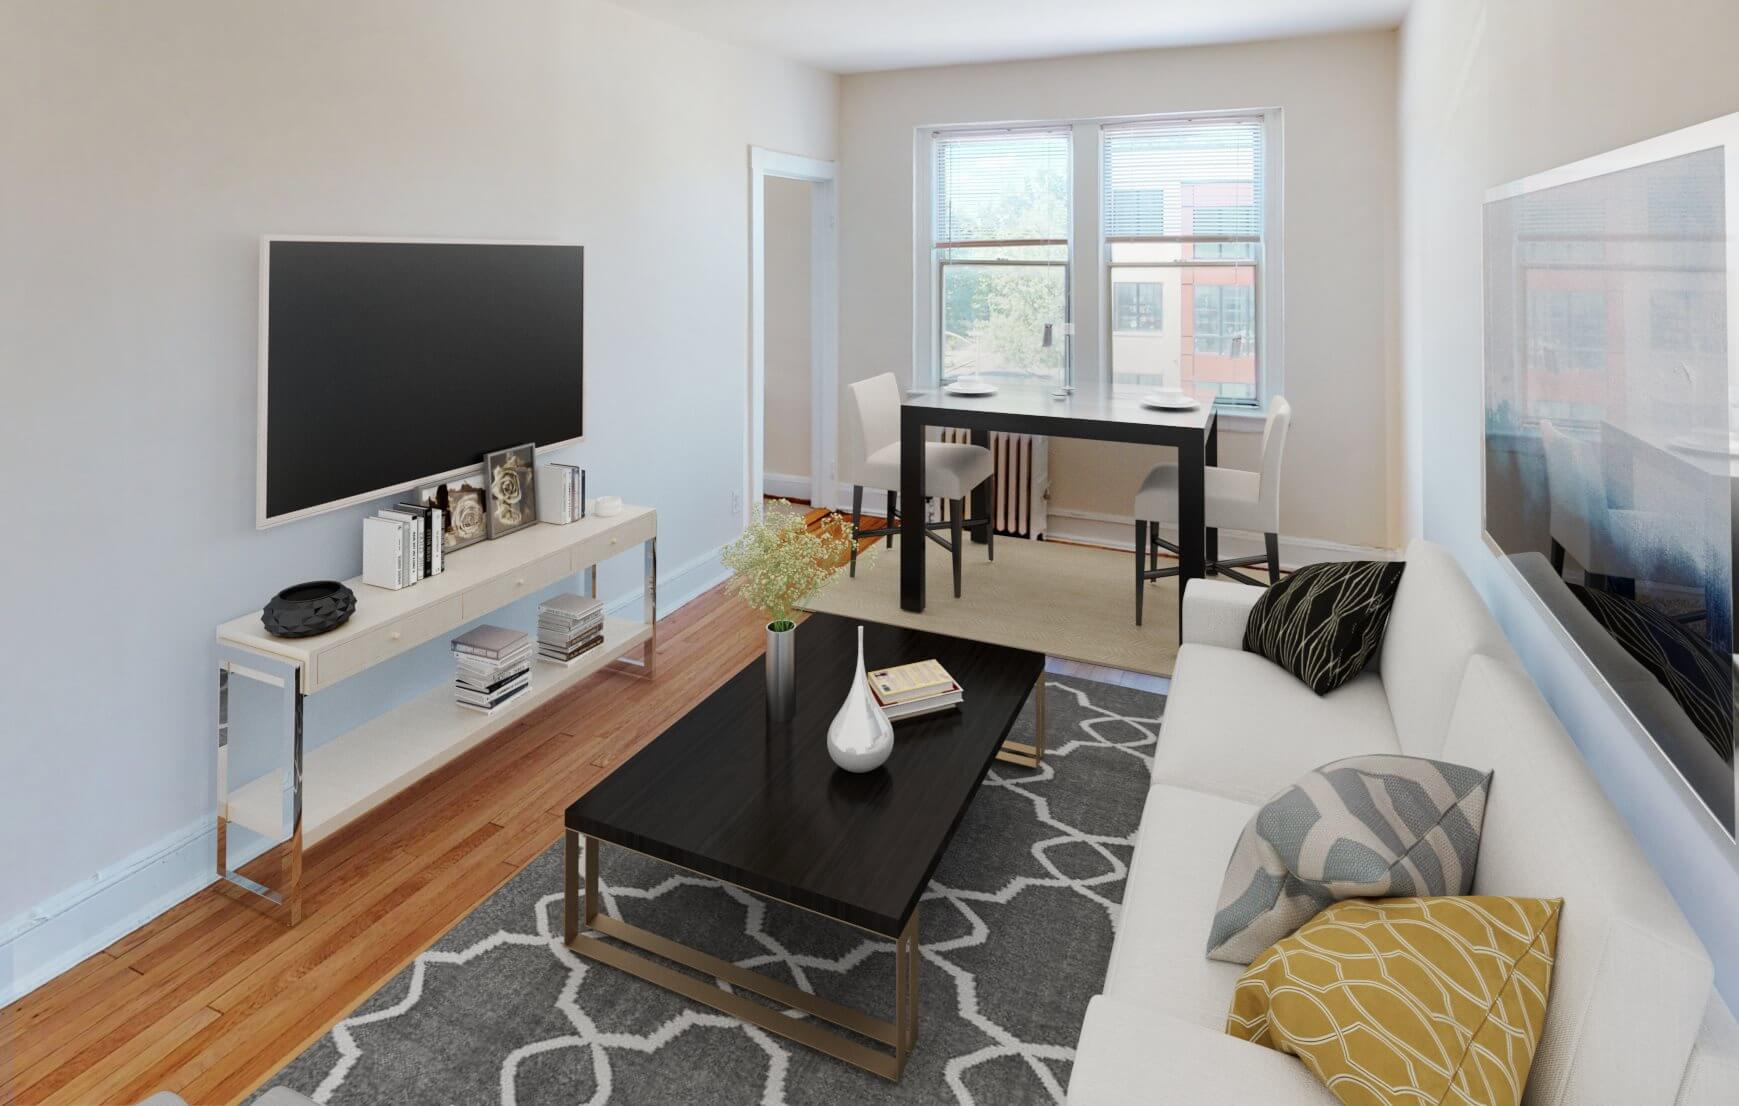 Renting a Room in Washington D.C.